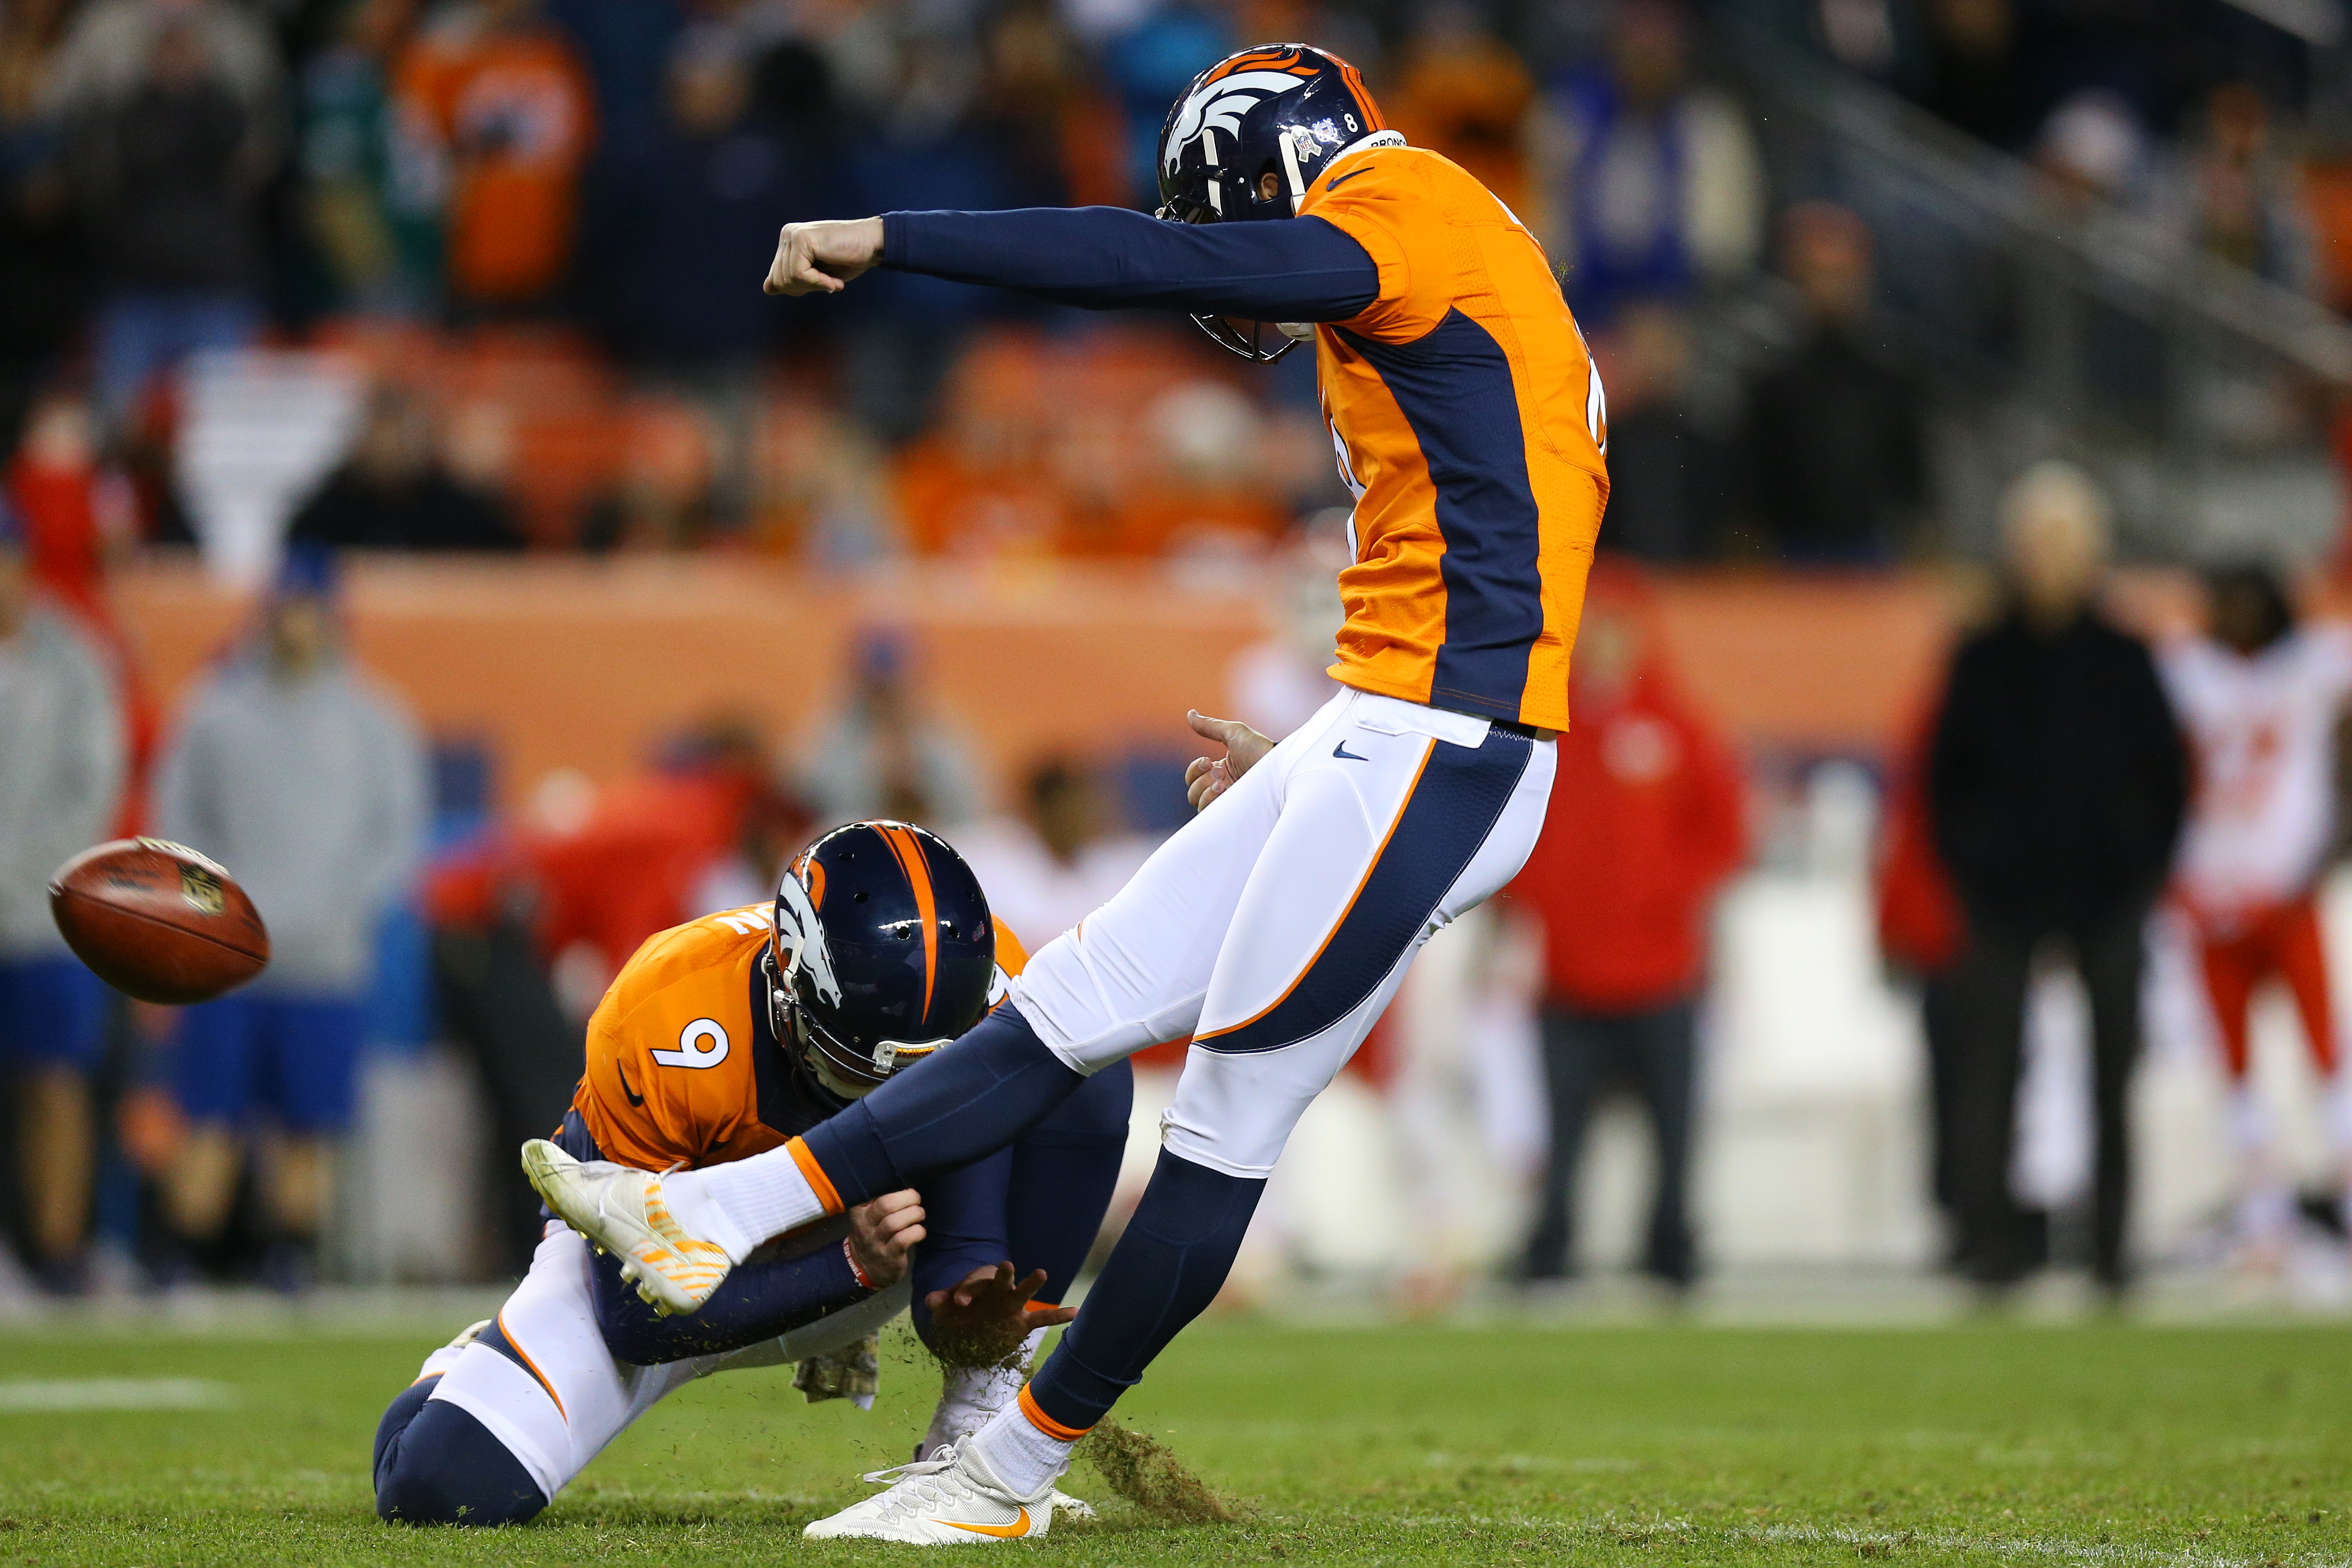 DENVER, CO - NOVEMBER 27: Kicker Brandon McManus #8 of the Denver Broncos makes a field goal in overtime of the game against the Kansas City Chiefs at Sports Authority Field at Mile High on November 27, 2016 in Denver, Colorado. (Photo by Justin Edmonds/Getty Images)